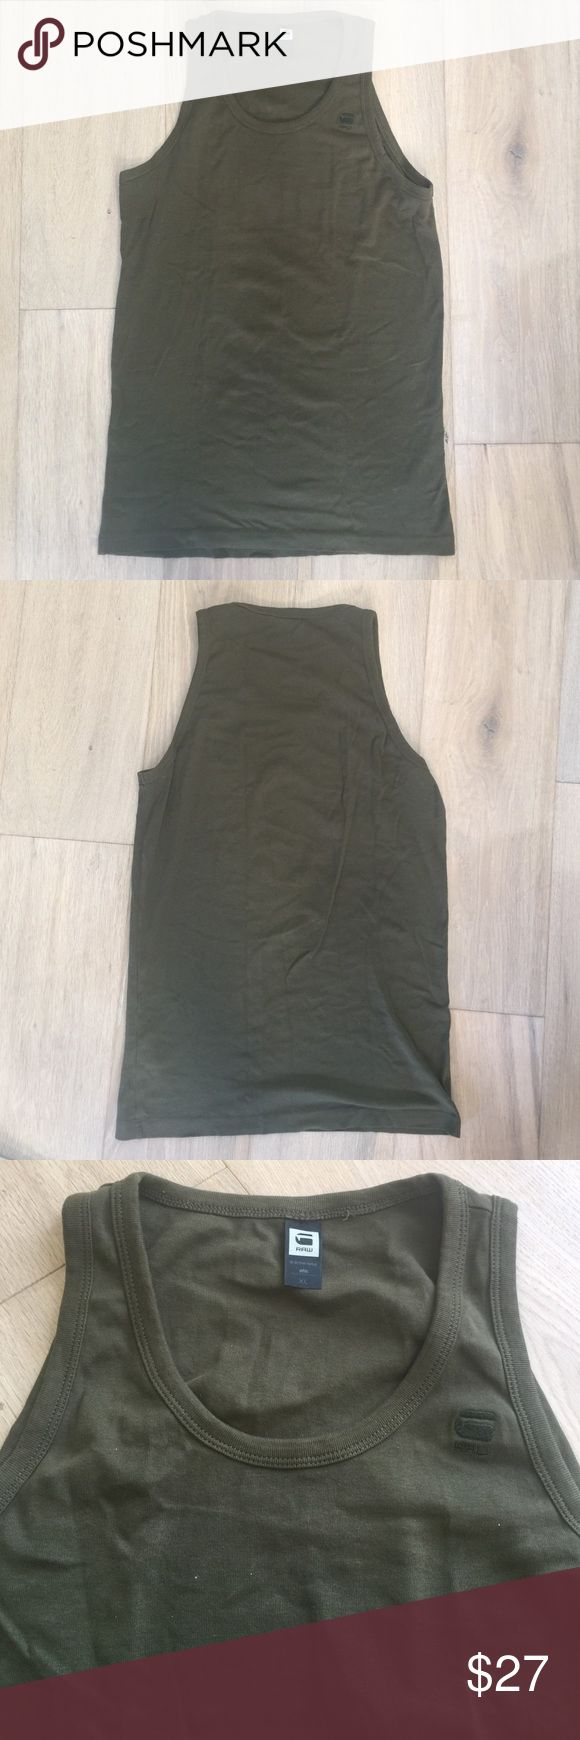 Men's G-STAR RAW Tank Top Excellent used condition! Men's G-Star RAW Tank Top in olive. Size is XL but fits small G-Star Shirts Tank Tops